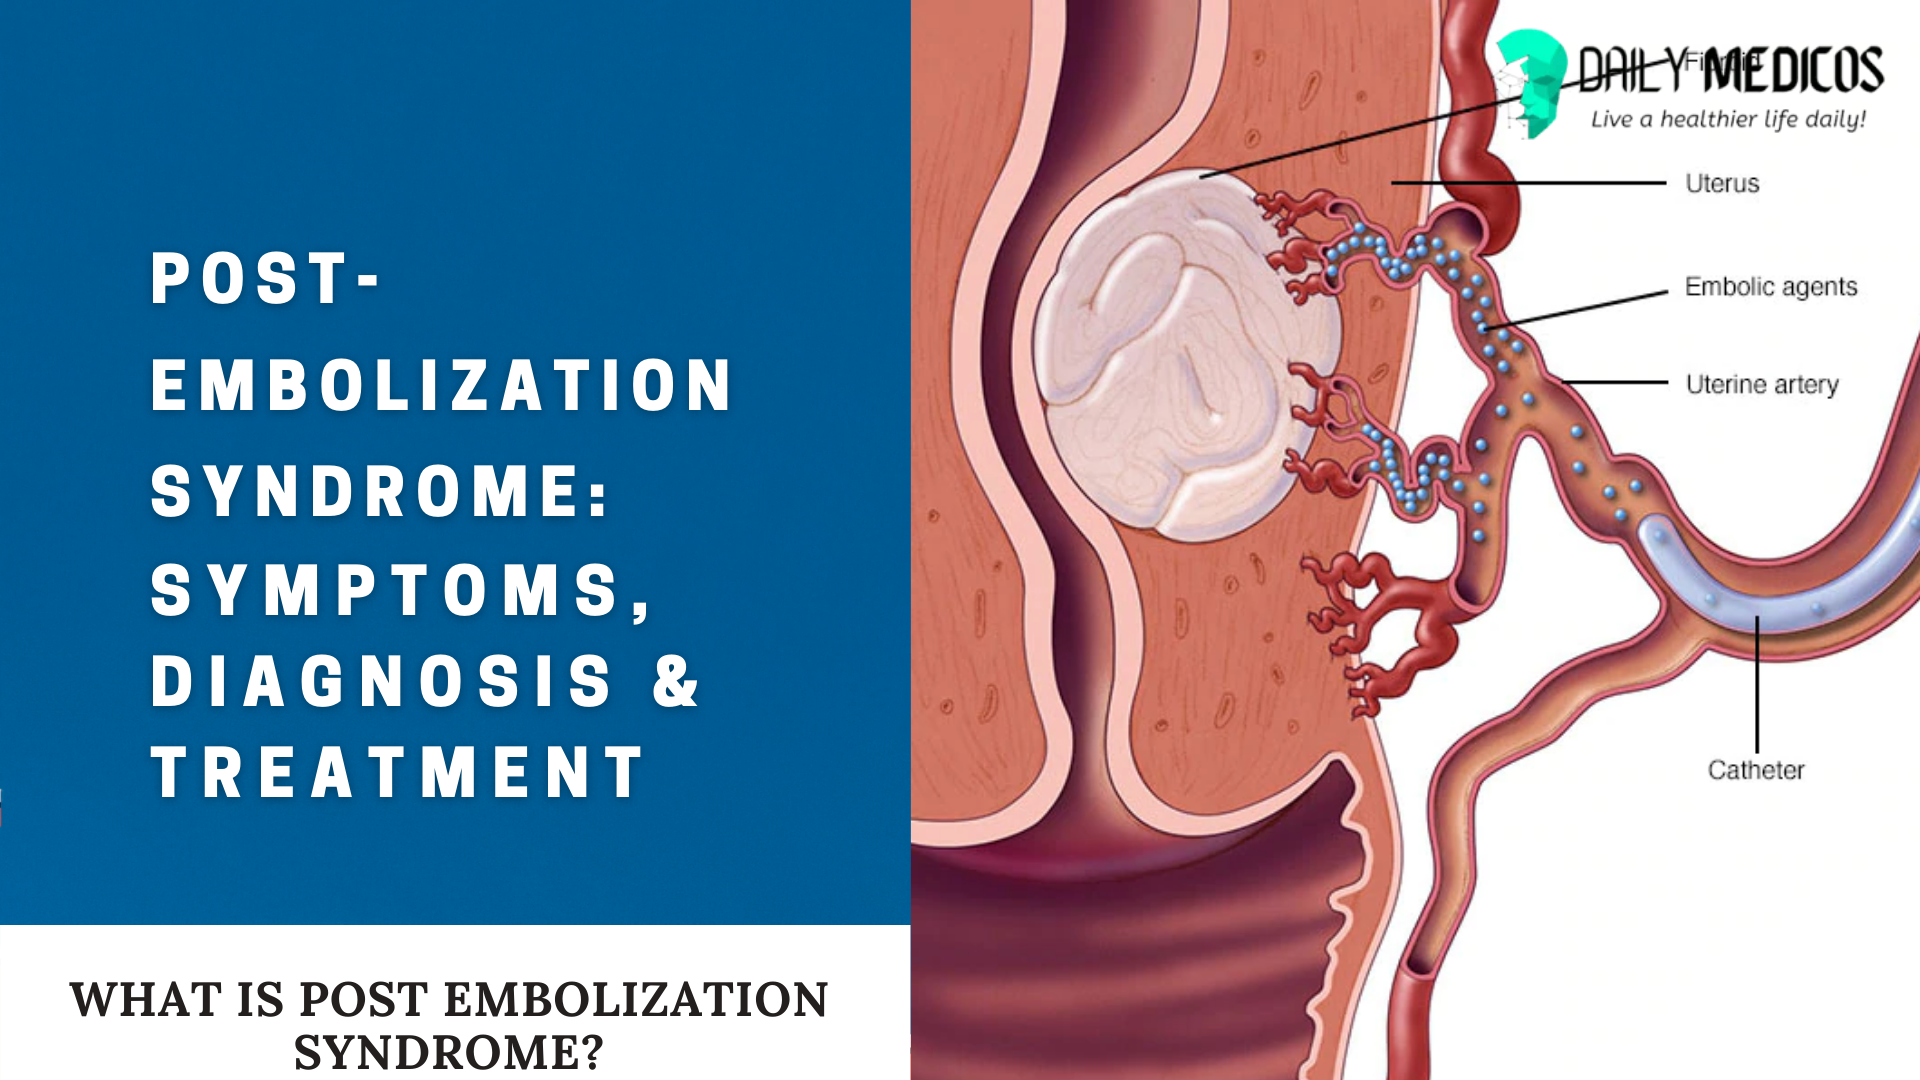 Post embolization Syndrome: All You Need to Know About it 1 - Daily Medicos